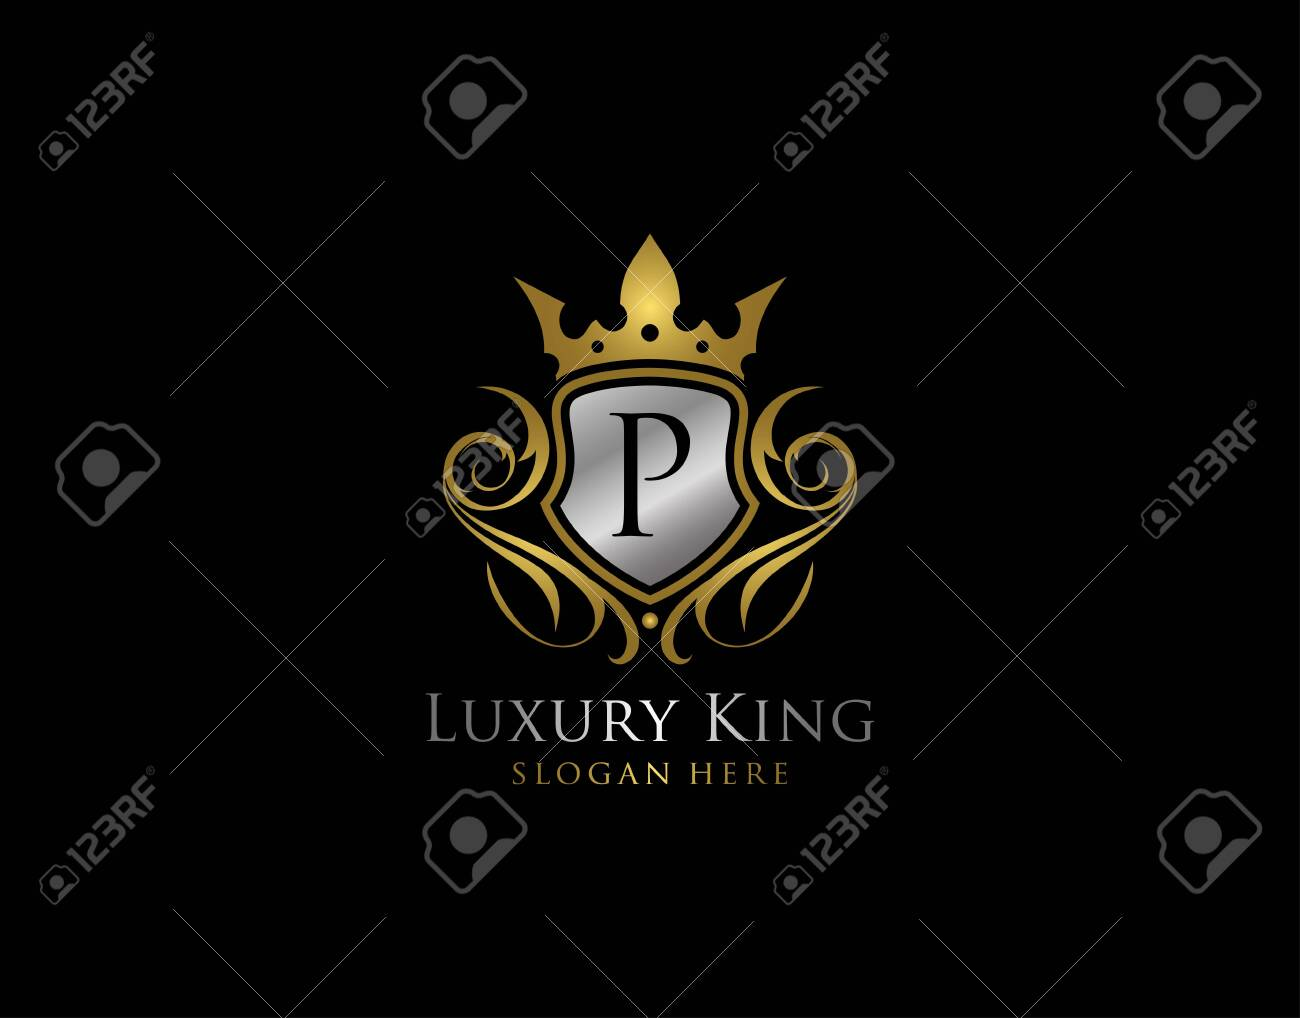 Luxury Shield P Letter Gold Logo, Golden P Classic Protection Symbol - 144467521